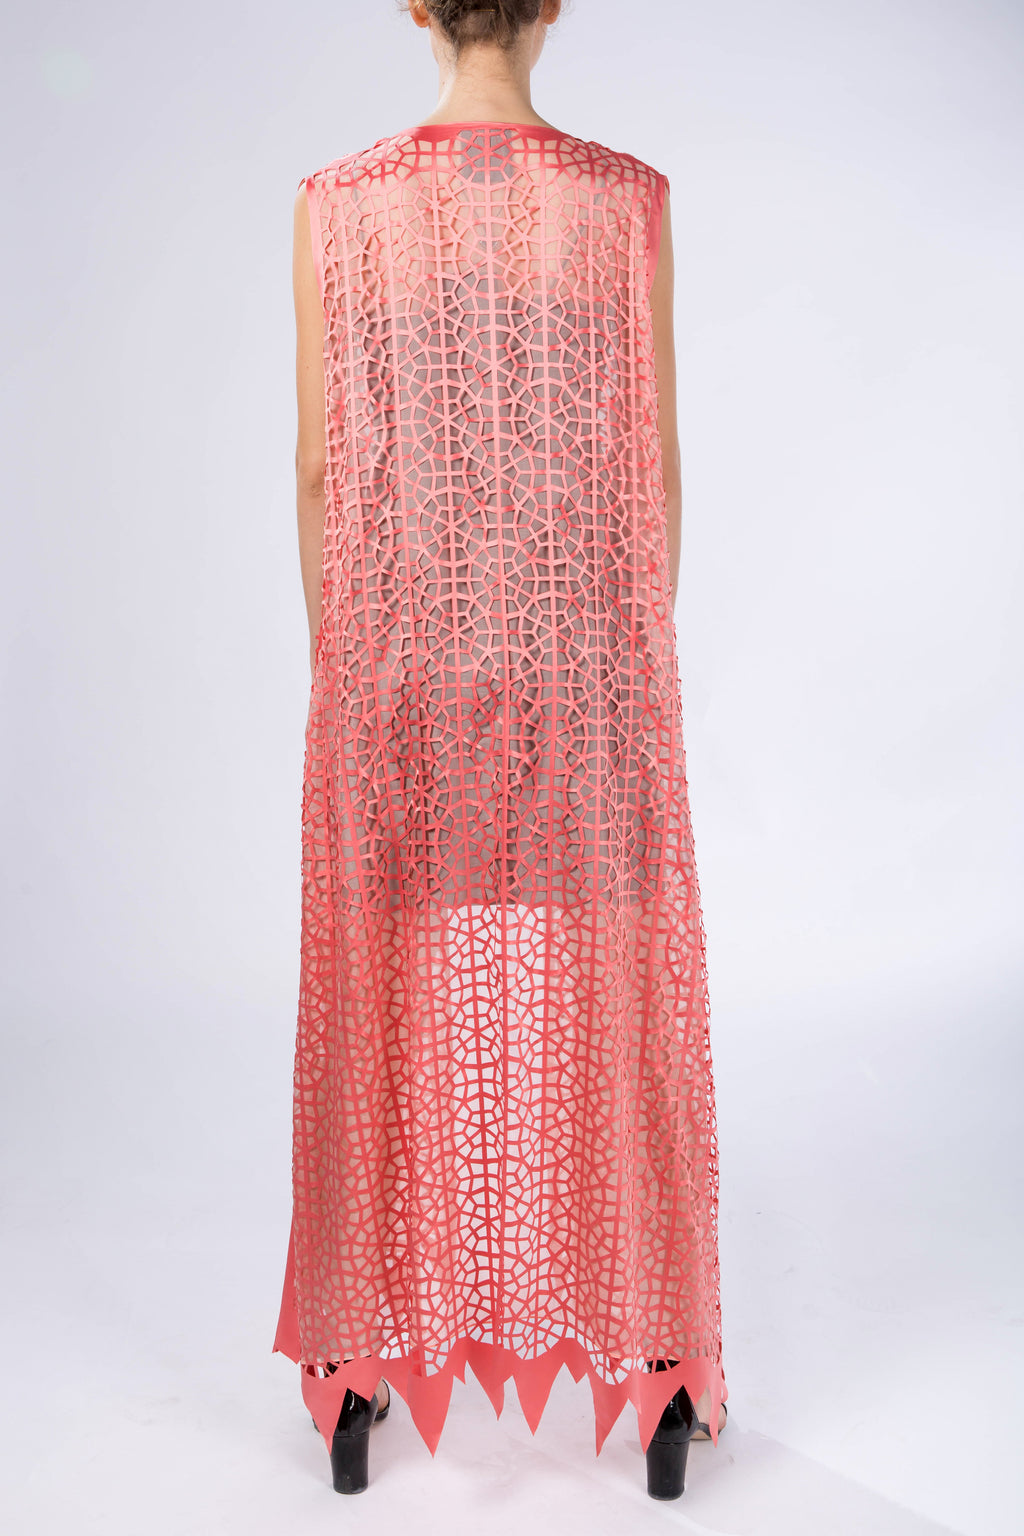 "Kaftan without sleeves ""Light Modern Vitrage"", Salmon Orange, back view, studio"